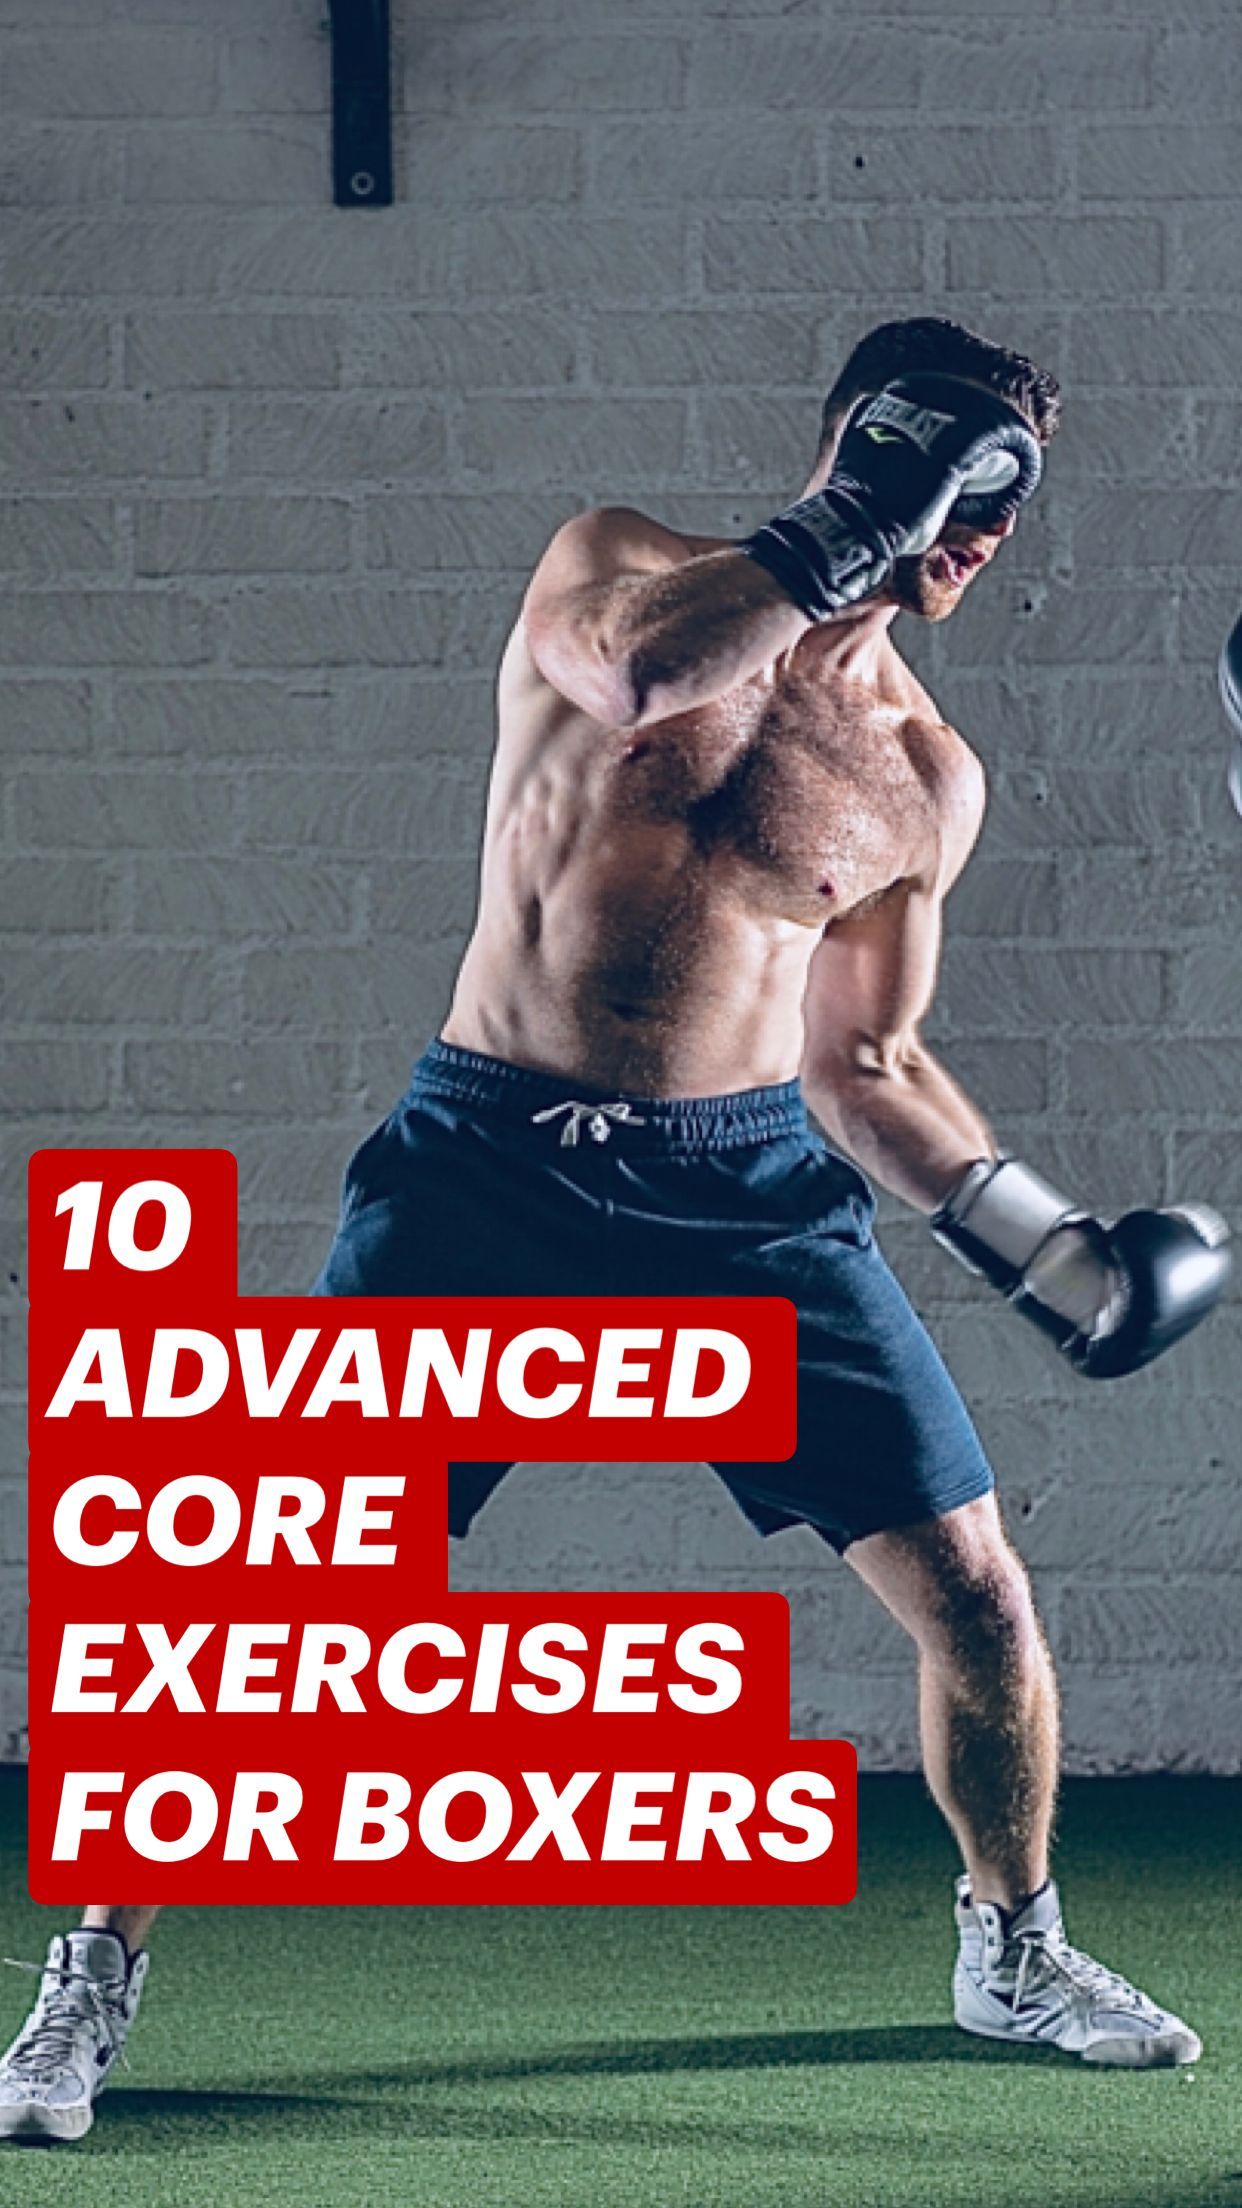 10 ADVANCED CORE EXERCISES FOR BOXERS